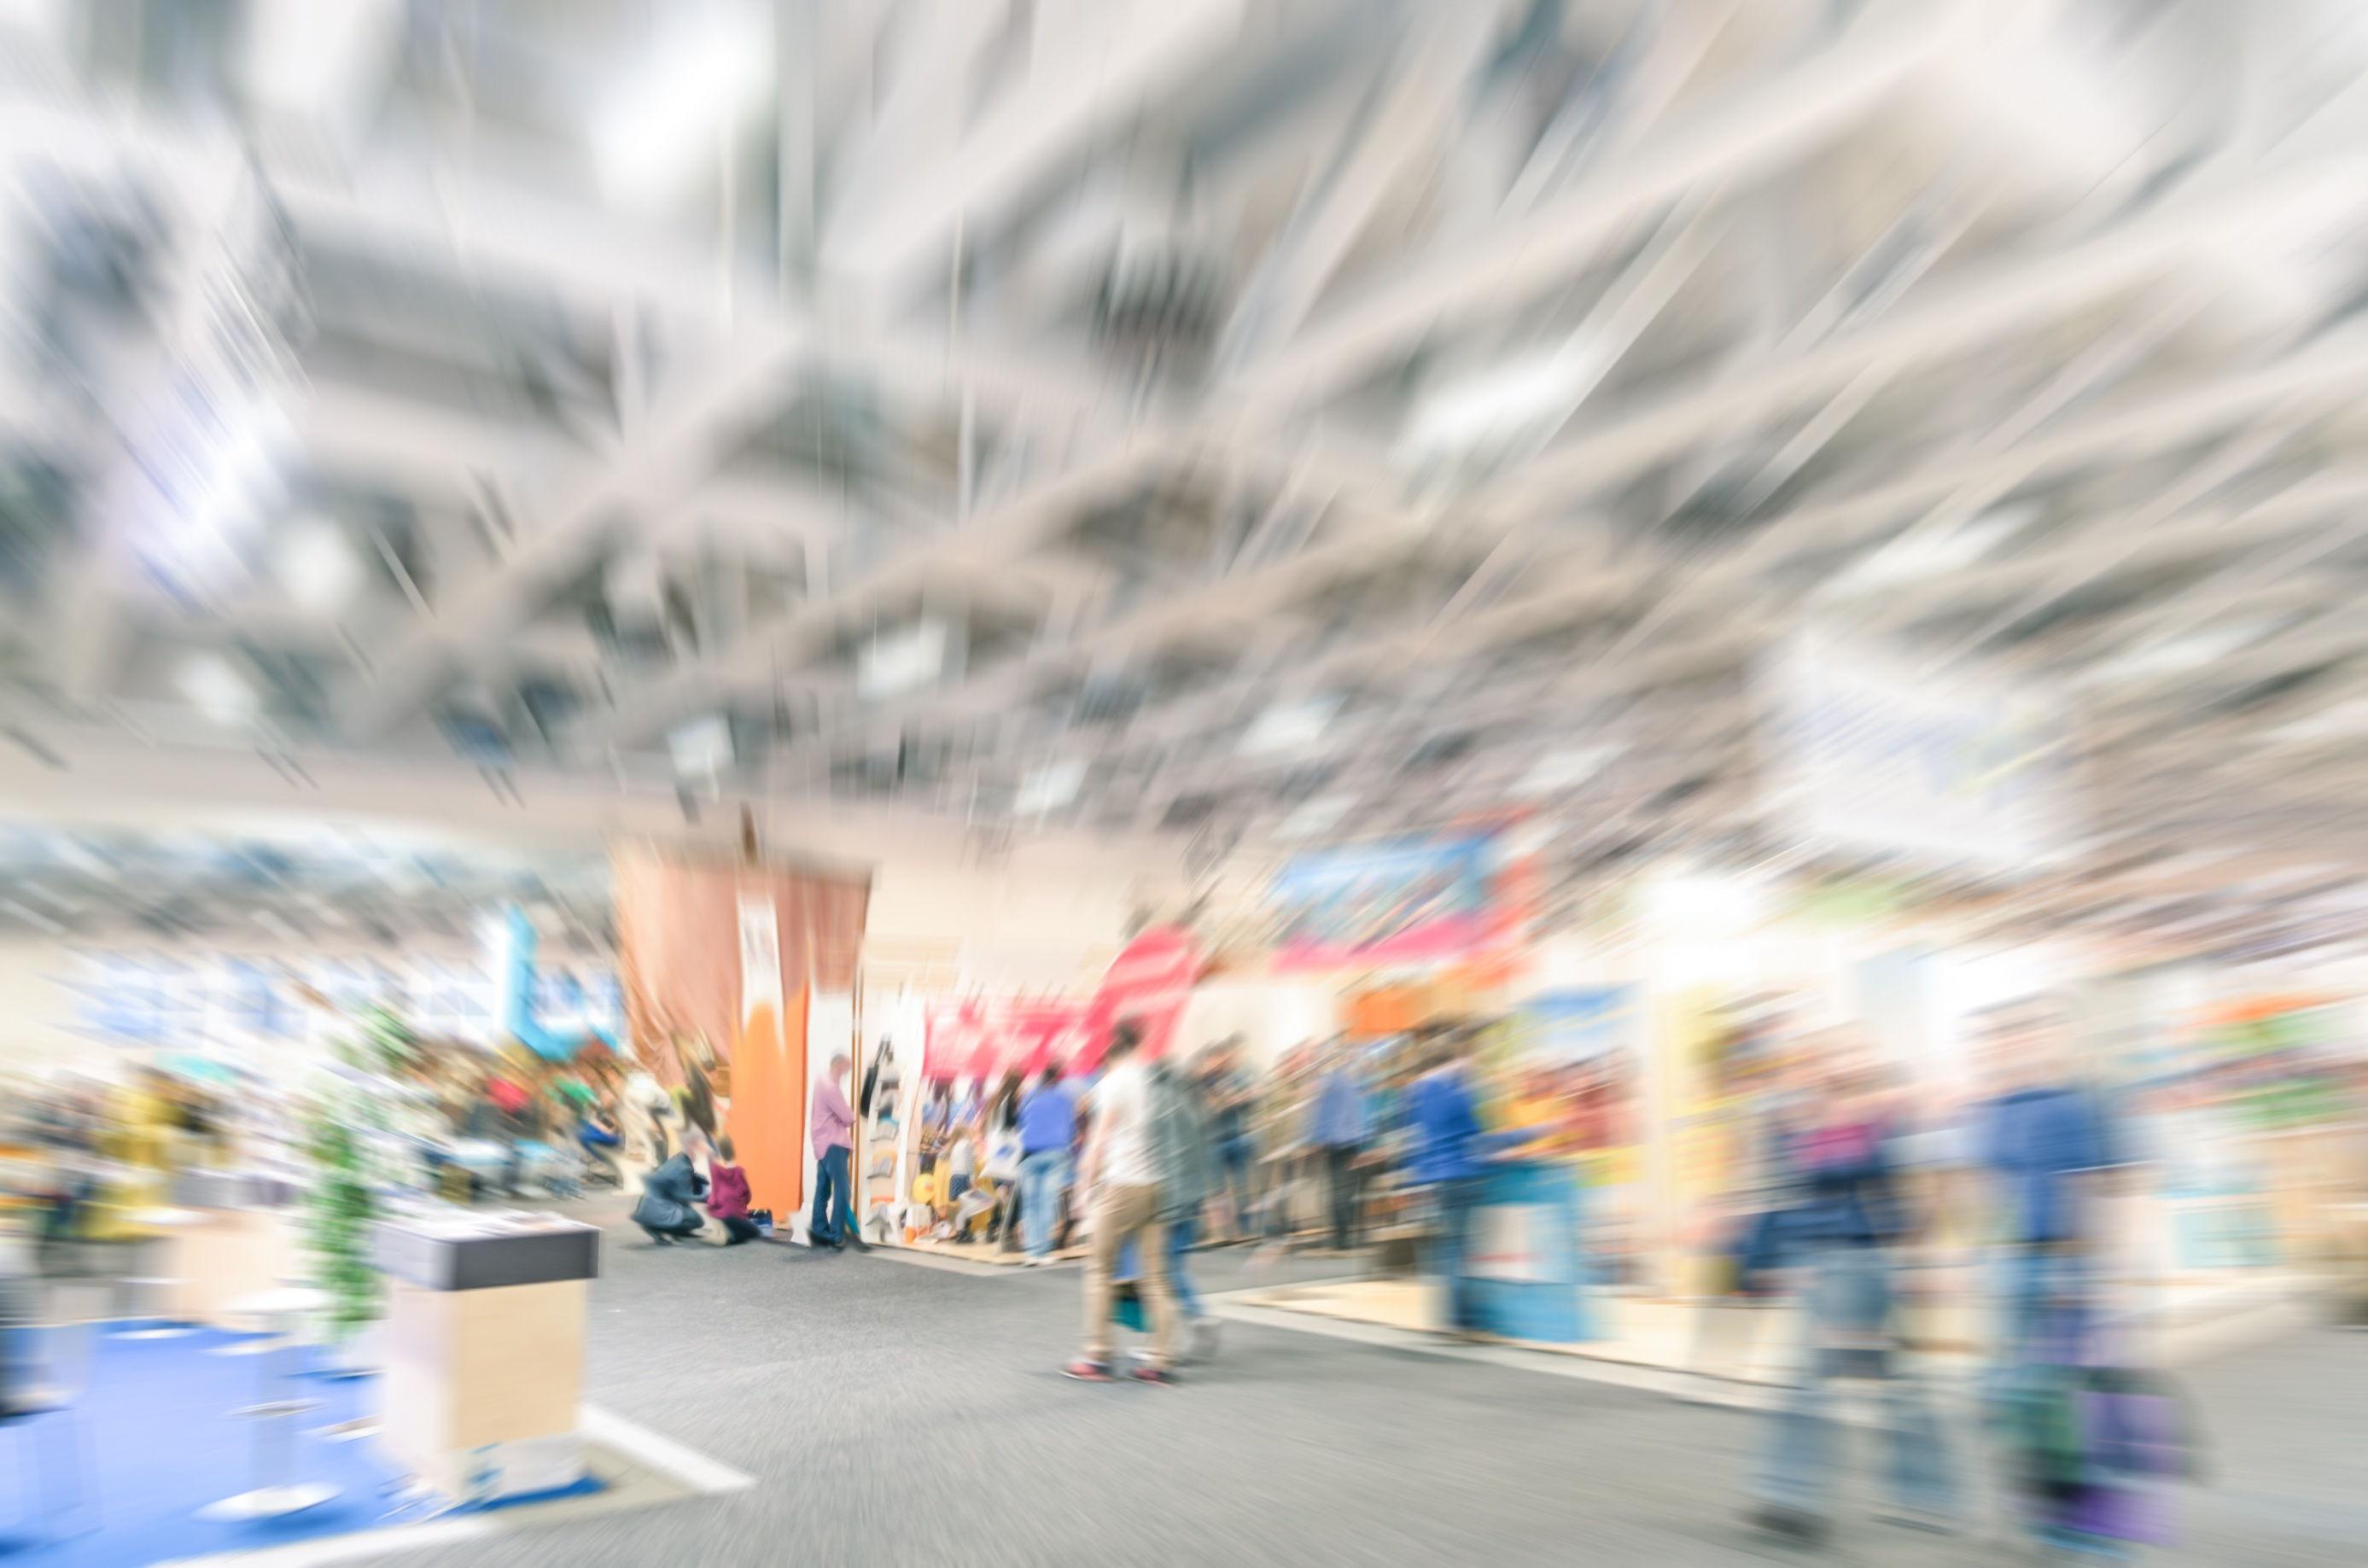 Tradeshow-during-the-event-blog-oct-2016.jpg